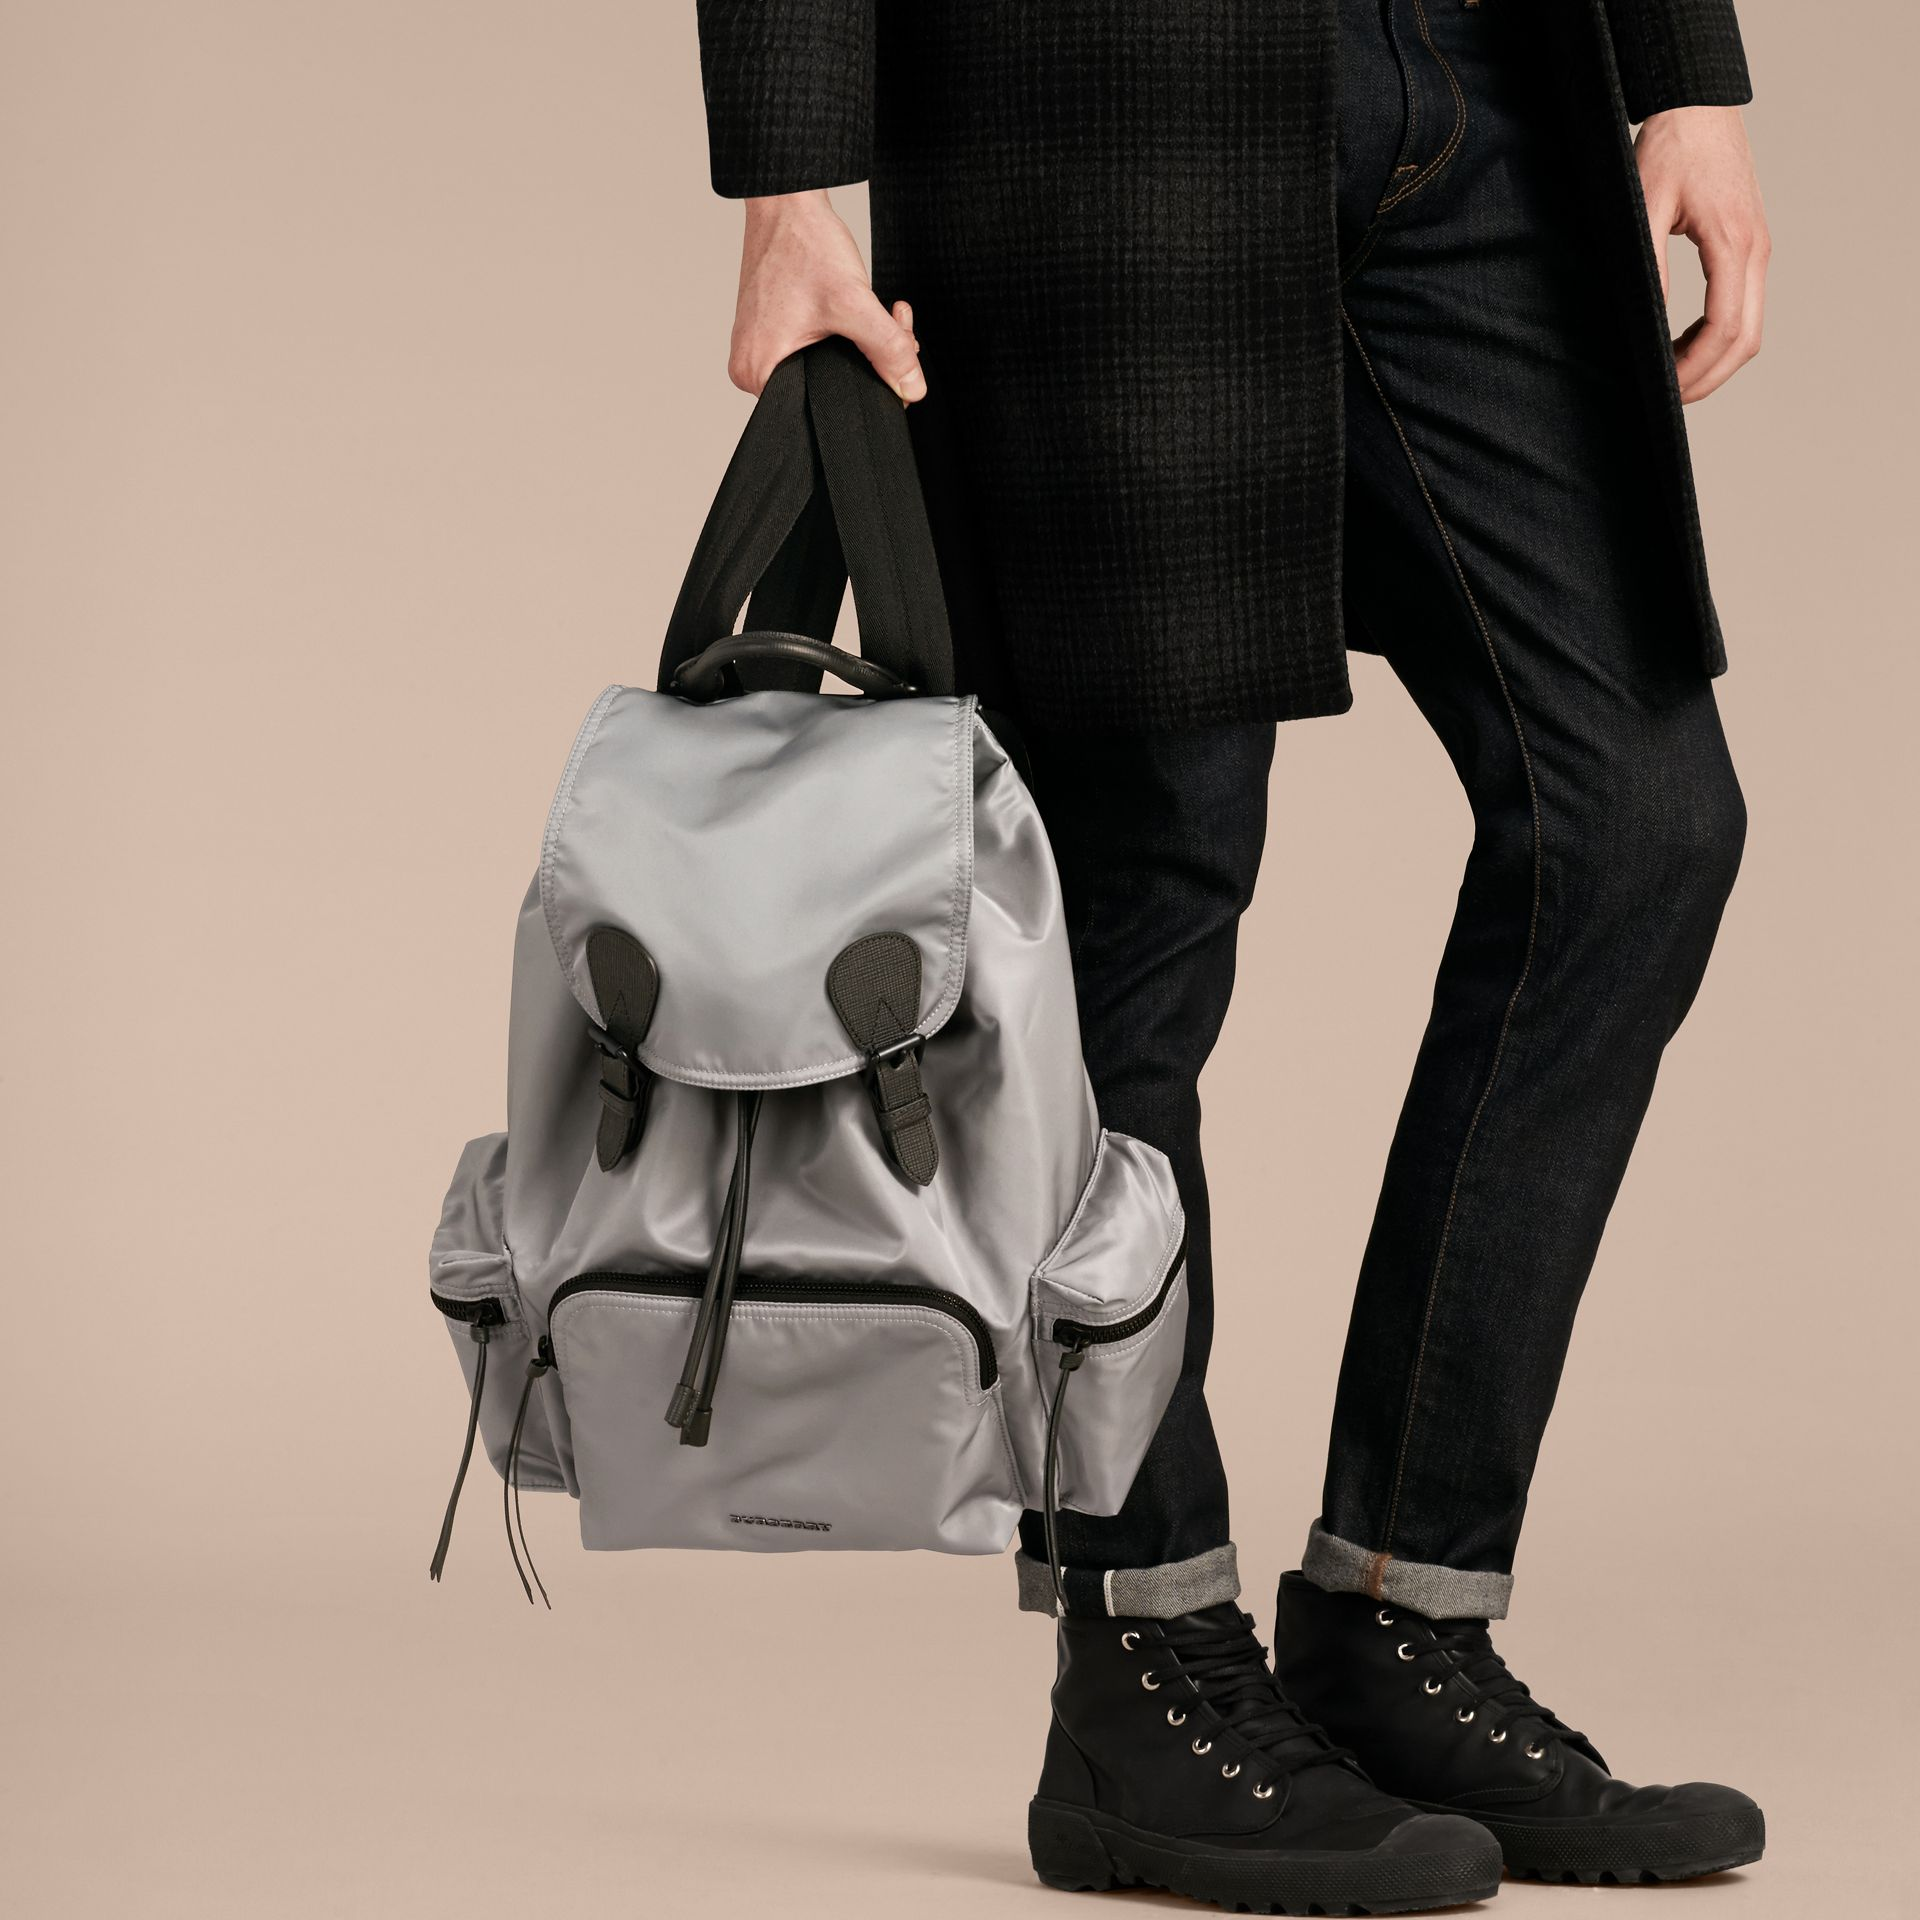 Thistle grey The Large Rucksack in Technical Nylon and Leather Thistle Grey - gallery image 3